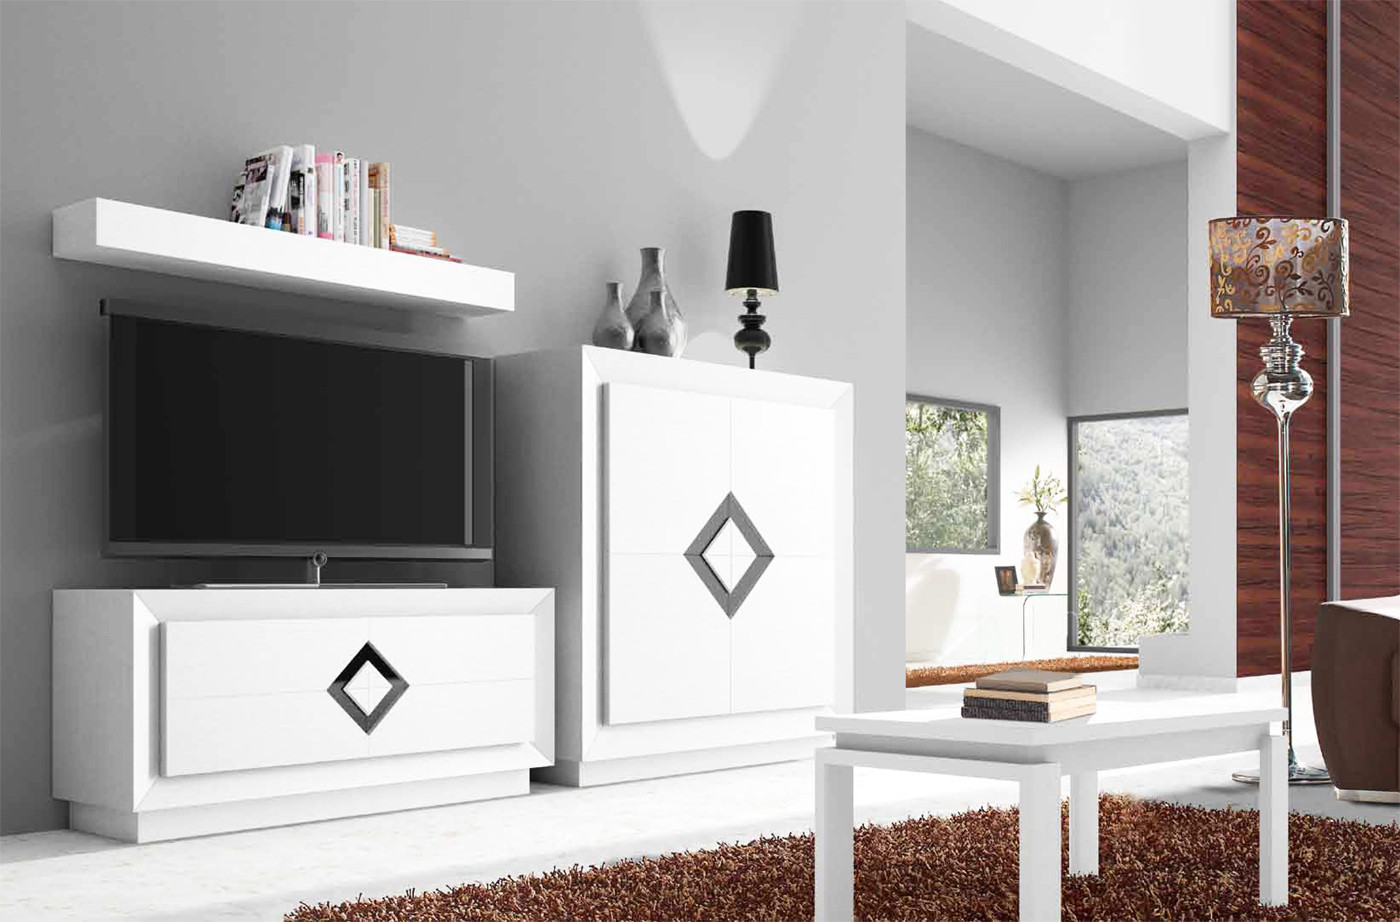 Muebles para sal n moderno con mueble televisi n y for Hacer mueble salon moderno